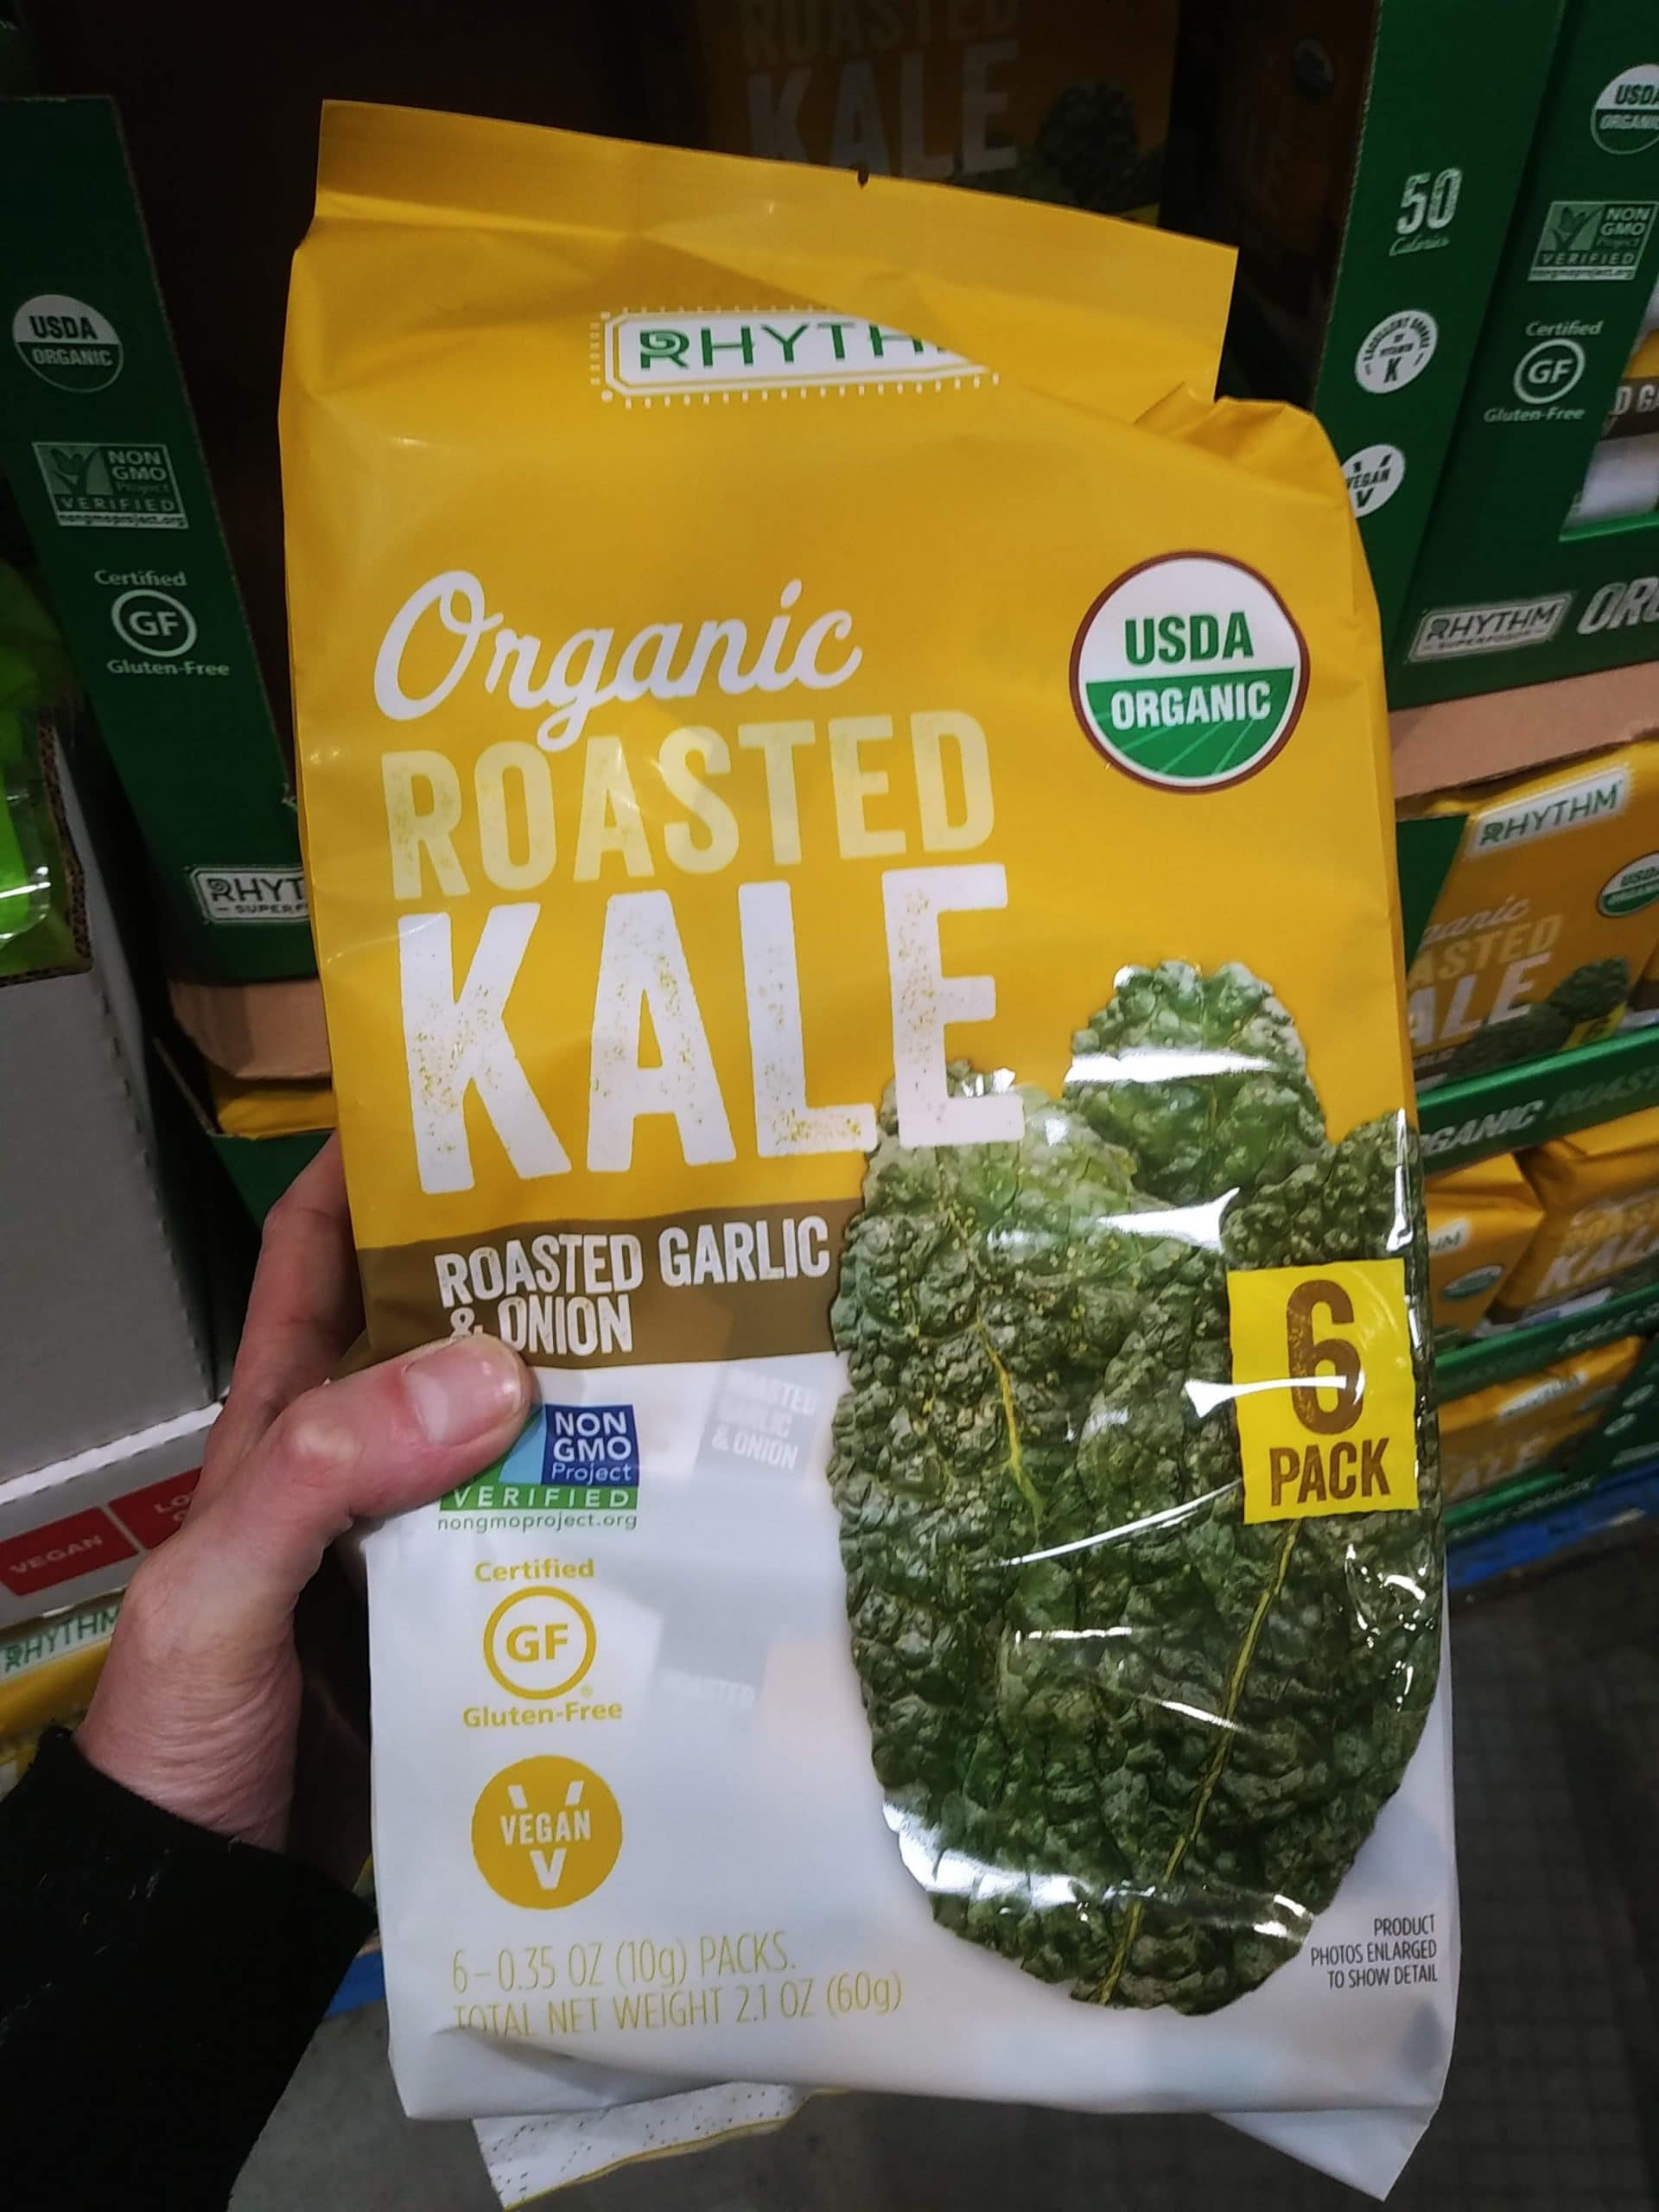 Rhythm Organic Roasted Kale $8.49